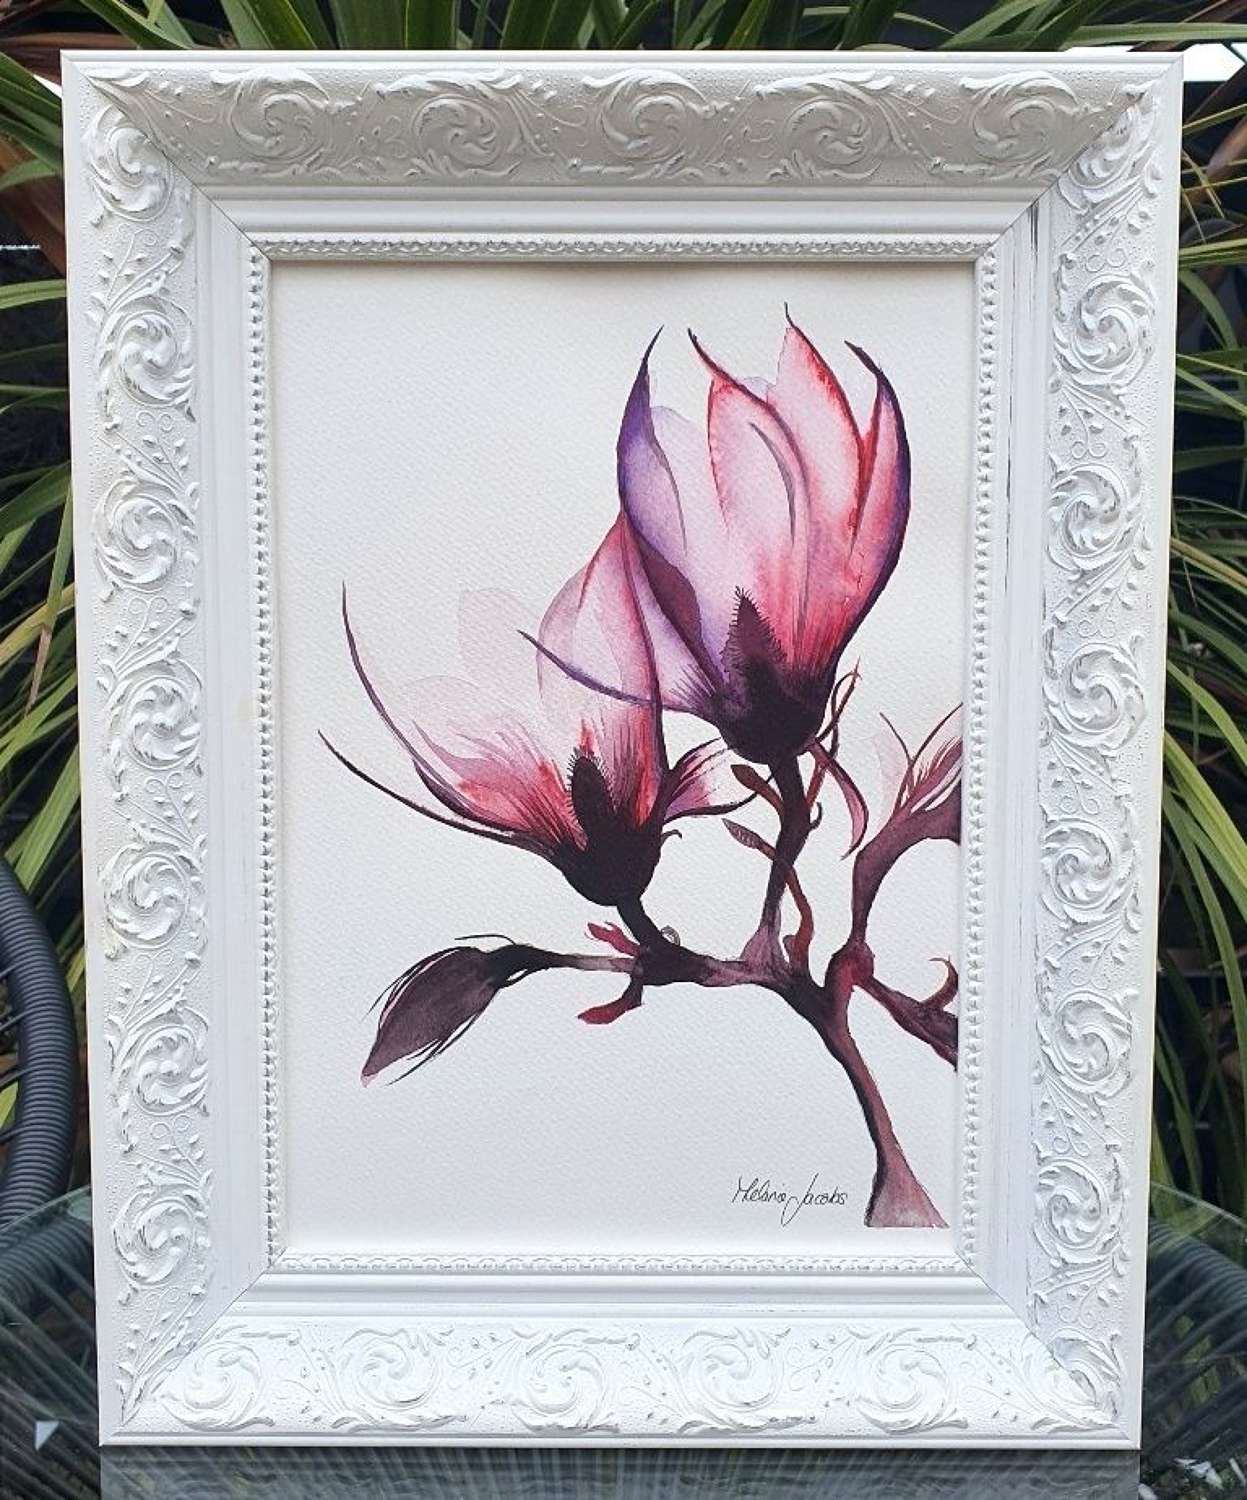 Lily Magnolia - Original Watercolour Painting by Melanie Jacobs